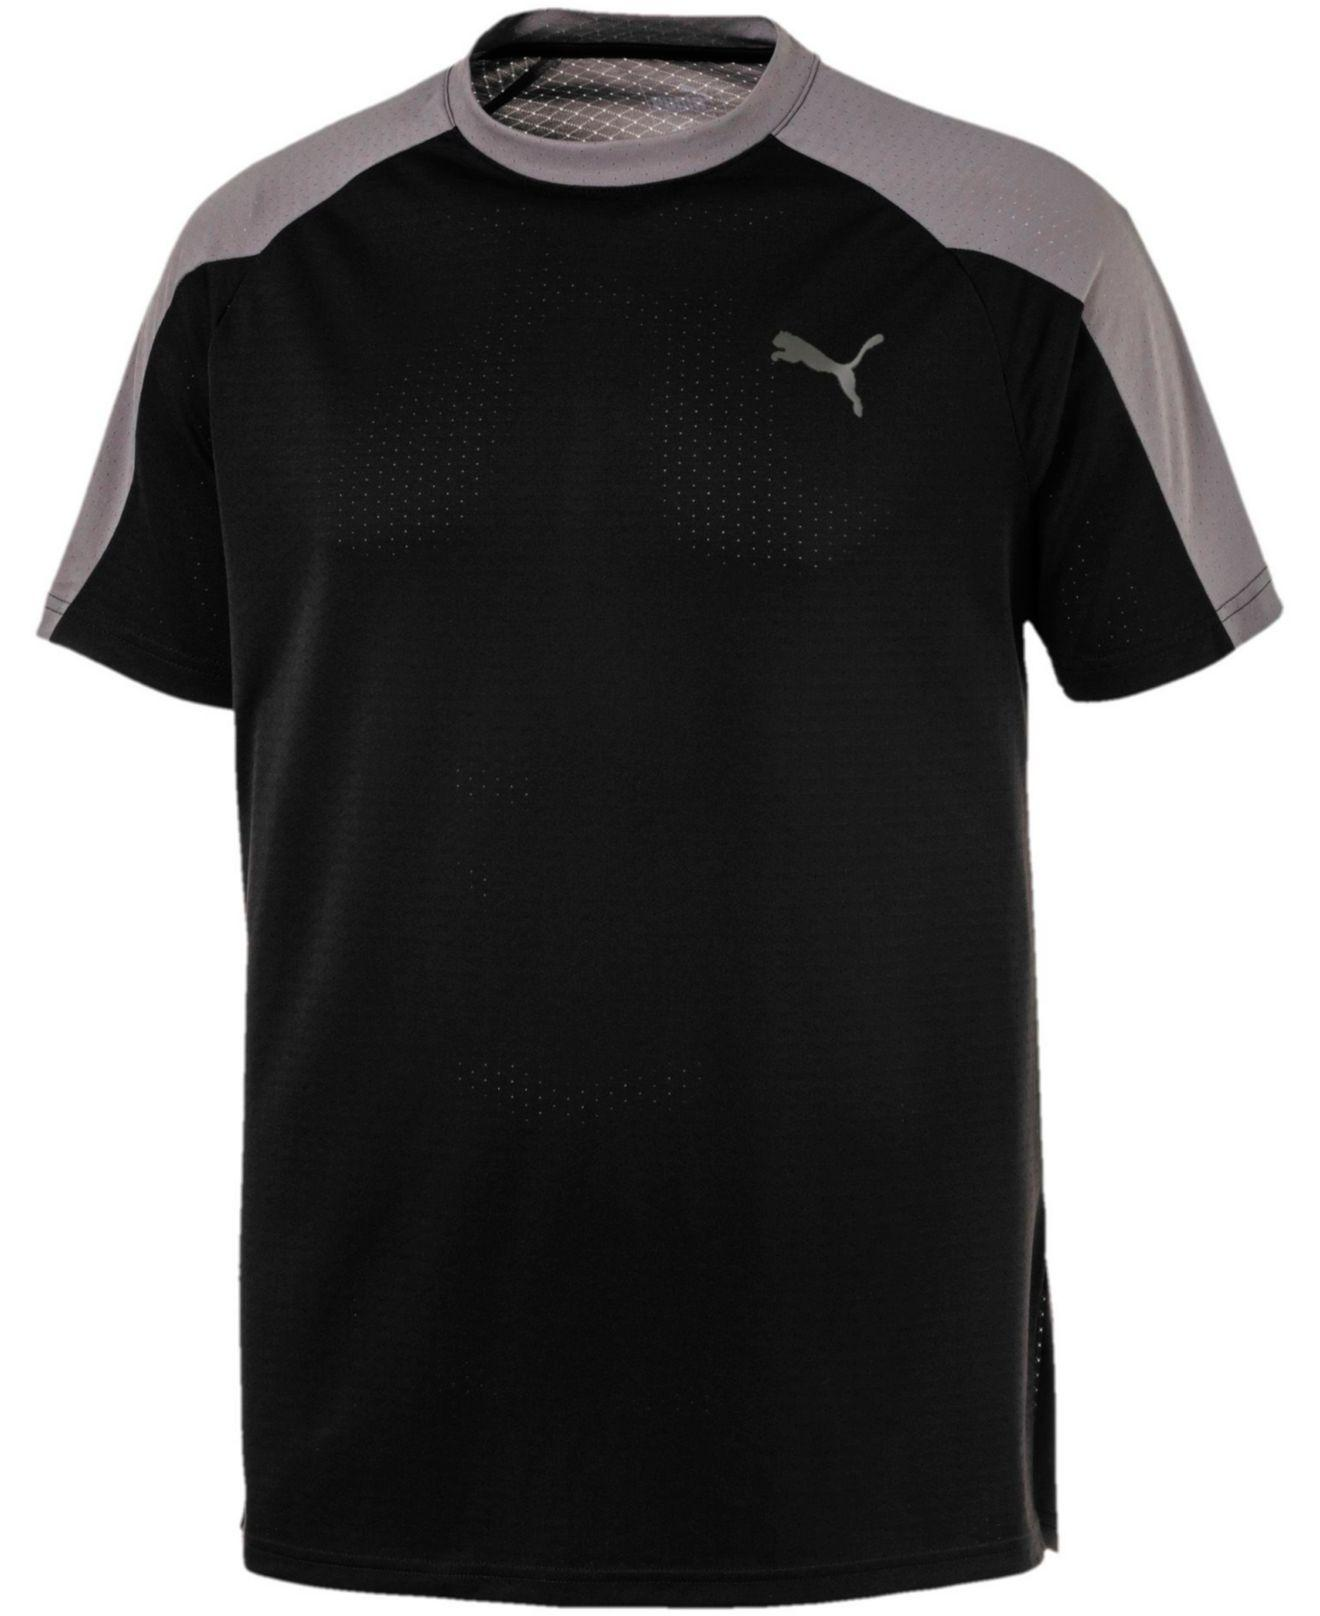 PUMA Synthetic Drycell Performance T-shirt in Black for Men - Lyst